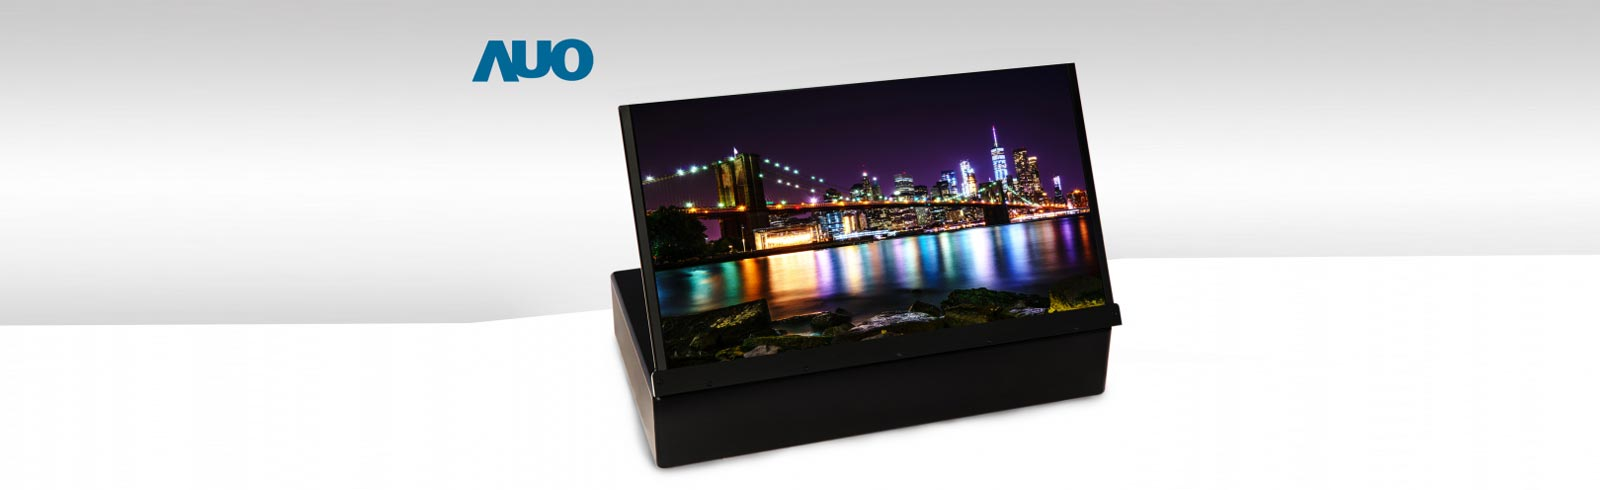 AUO will showcase the world's first optical fingerprint sensor within an LCD display